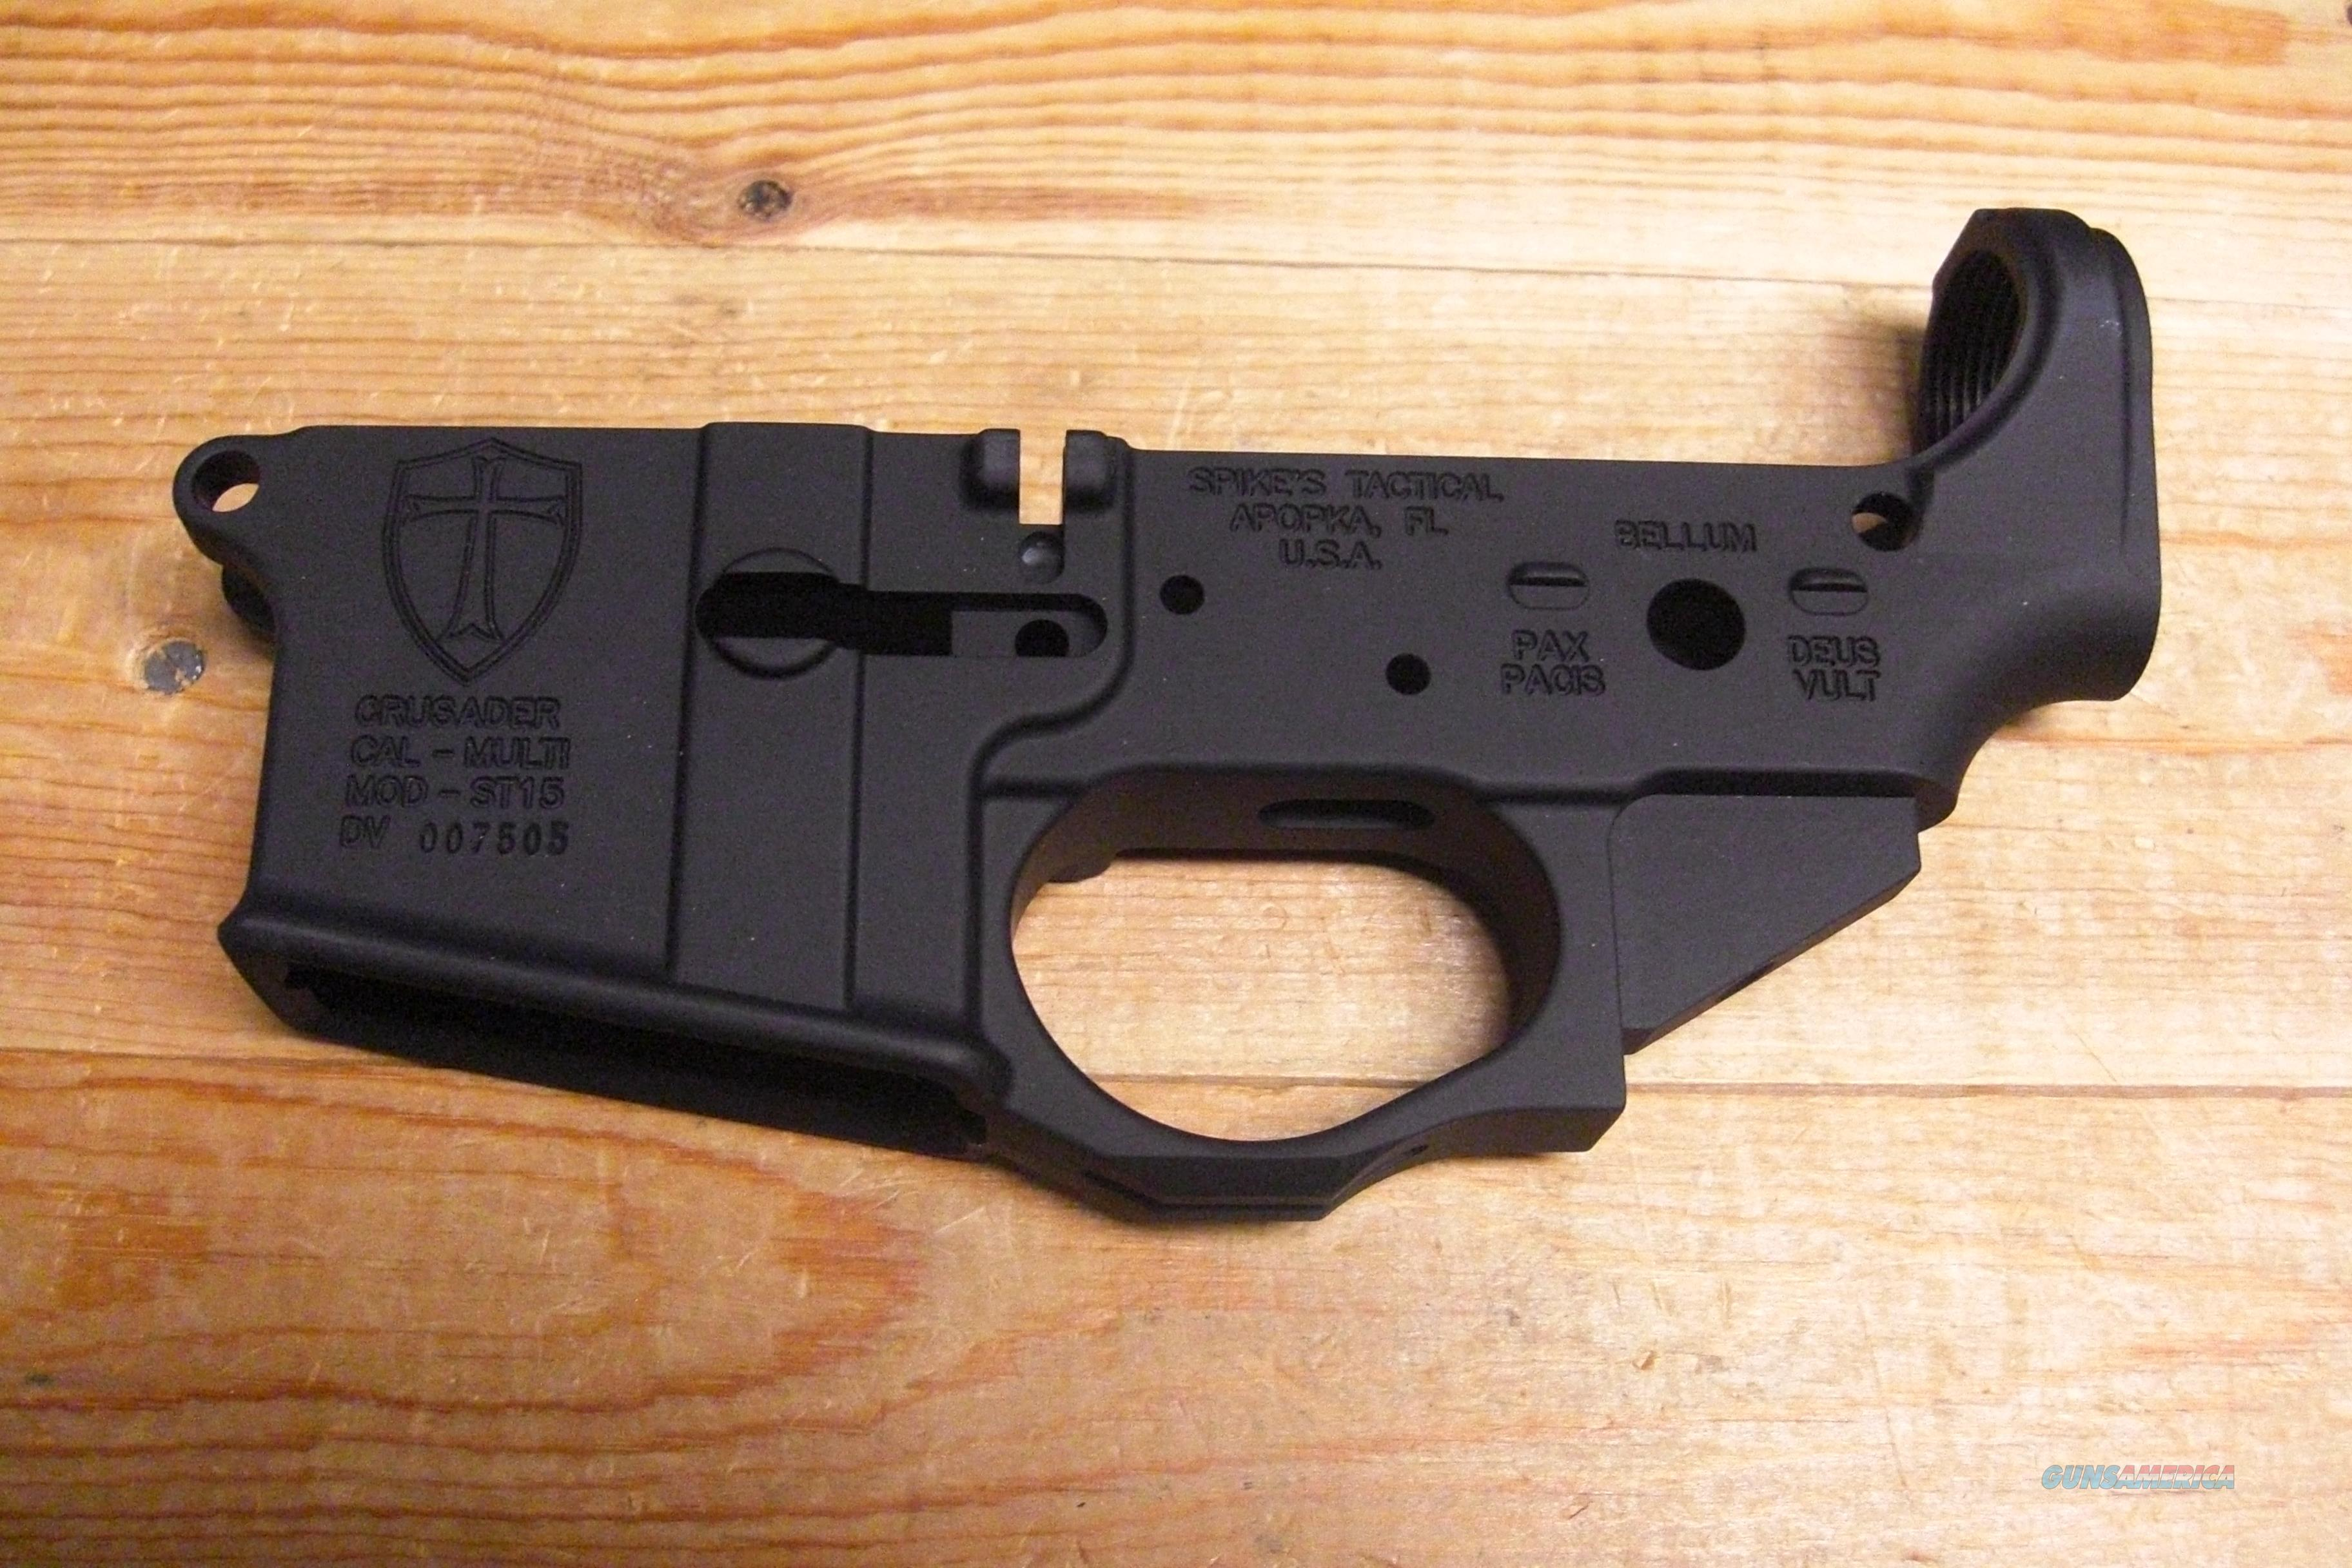 Spike's Tactical ST15 Crusader receiver